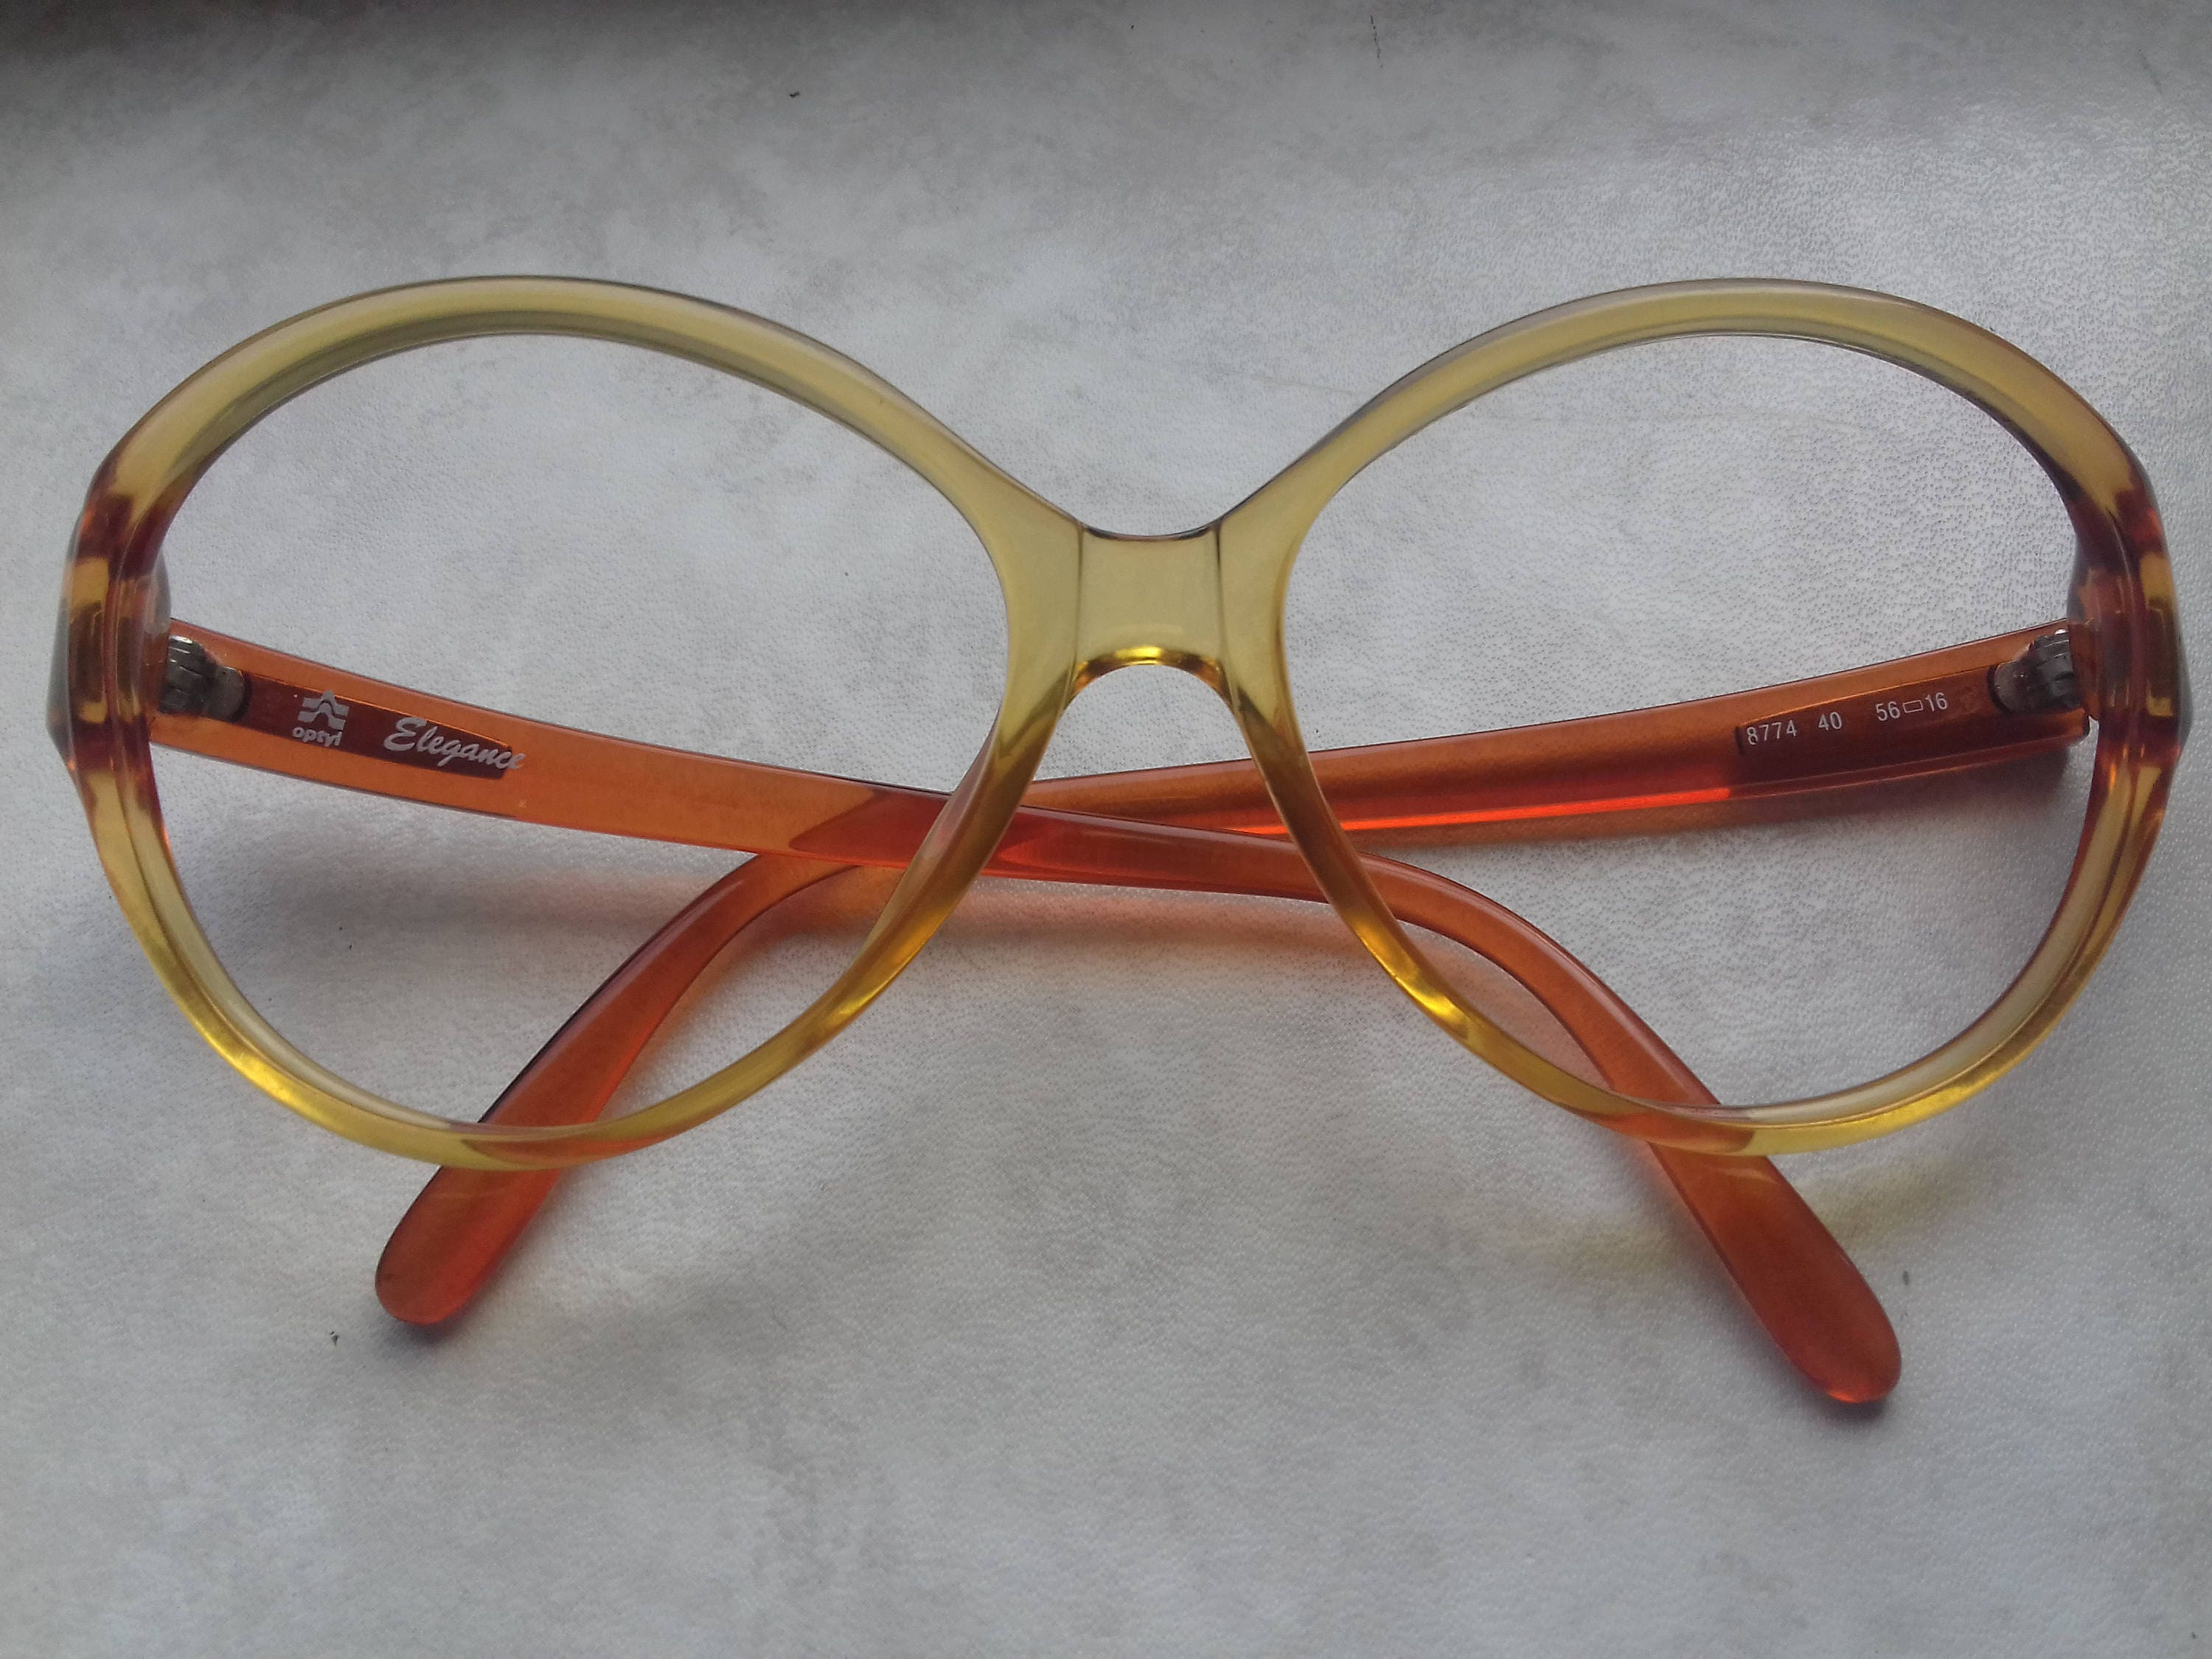 e14e49f8f1c Beautiful Vintage 70 s Women s Glasses Frames by Optyl-Optyl Elegance ...